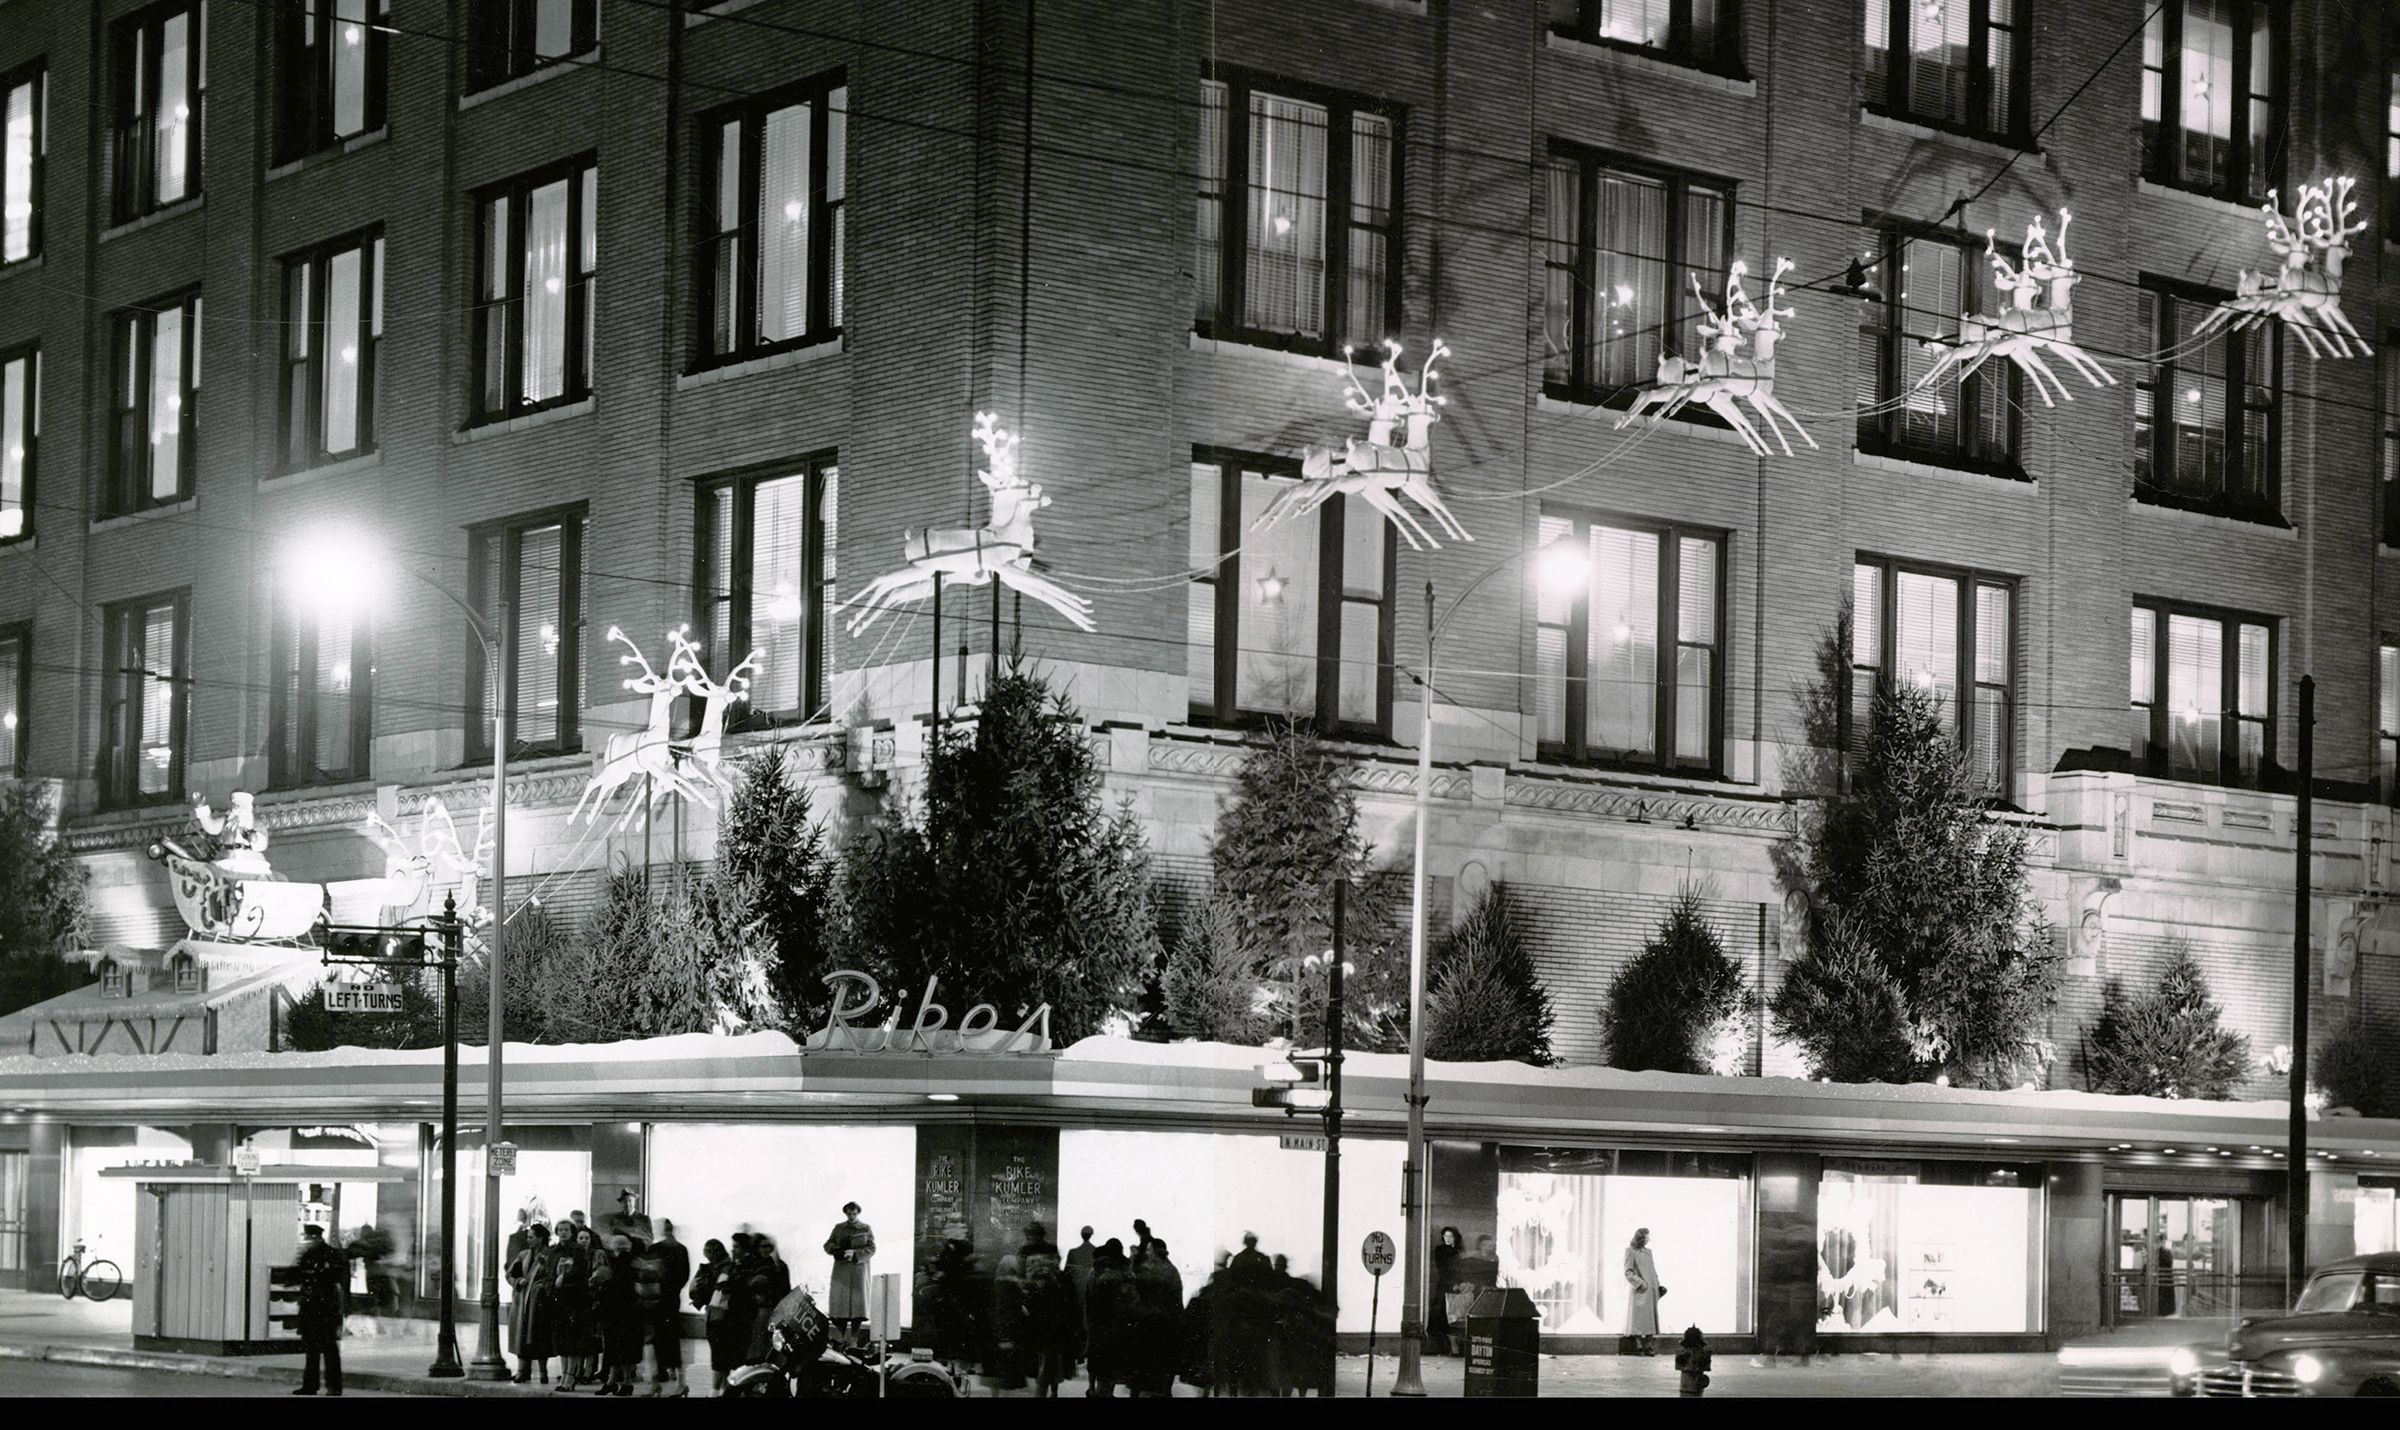 Visitors take in the windows of Rike's department store in 1952.  Frederik Rike, owner of the Rike-Kumler Co., moved the Christmas window displays from New York City to downtown Dayton in 1945. DAYTON DAILY NEWS / WRIGHT STATE UNIVERSITY SPECIAL COLLECTIONS